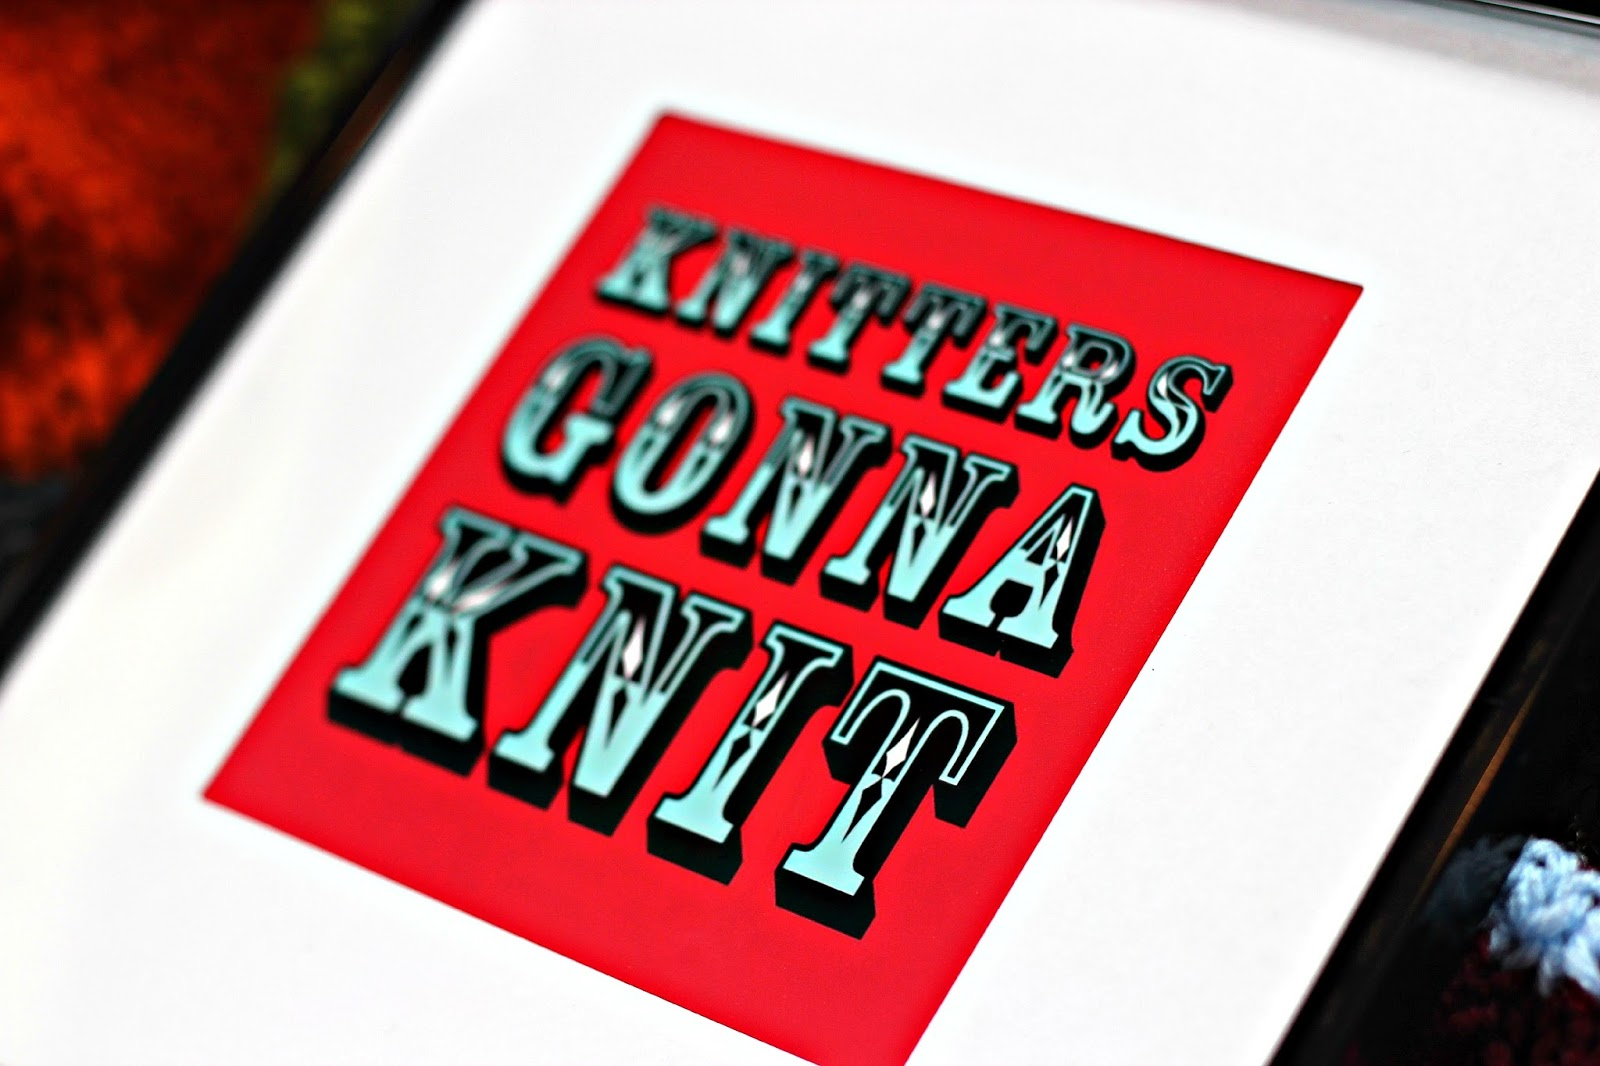 cobberson knitters gonna knit red print